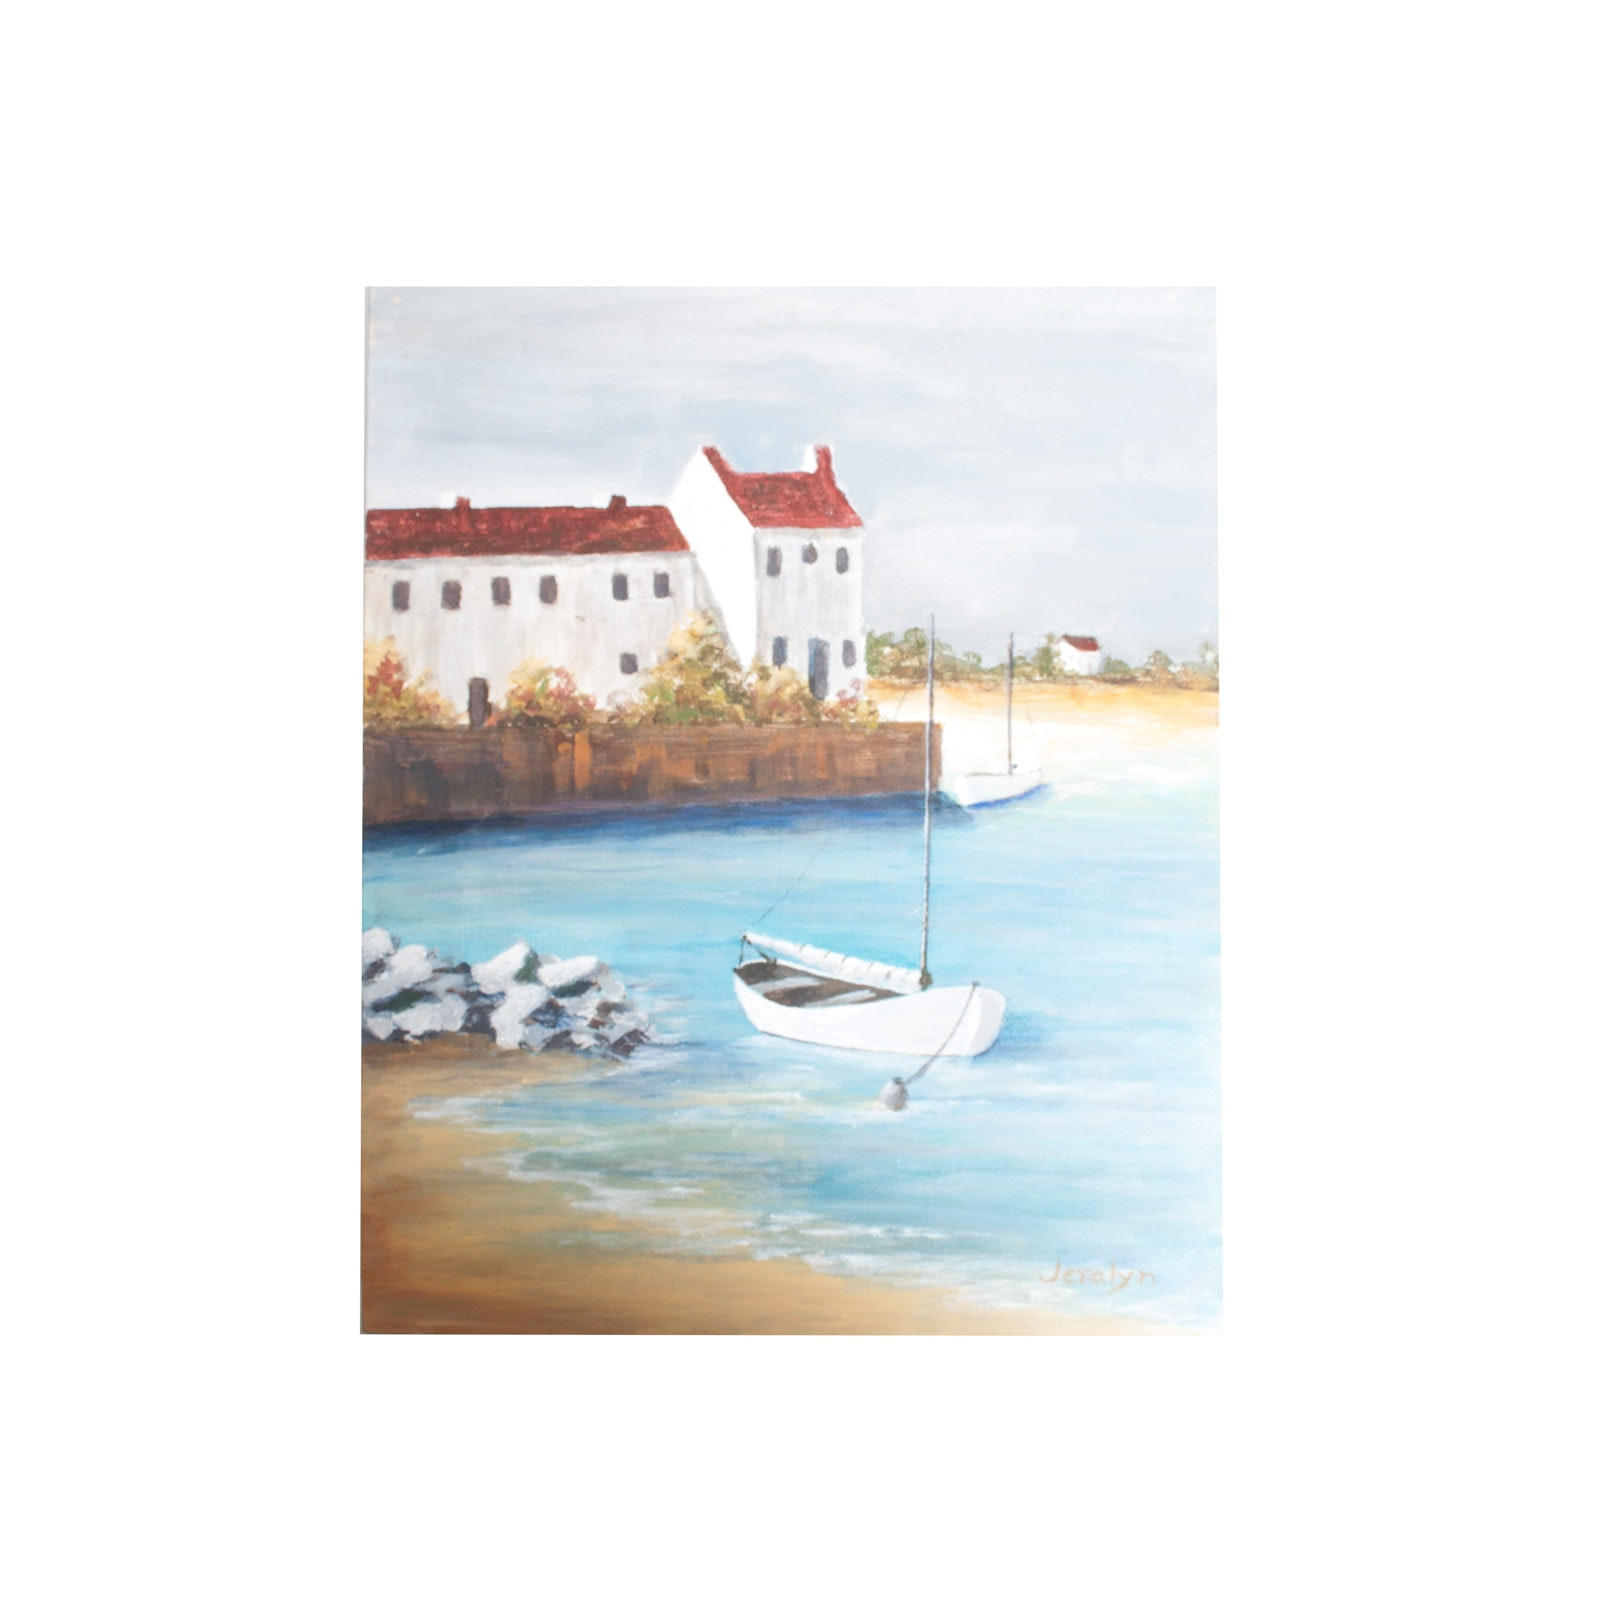 Jeralyn Original Oil Painting on Canvas of Coastal Scene